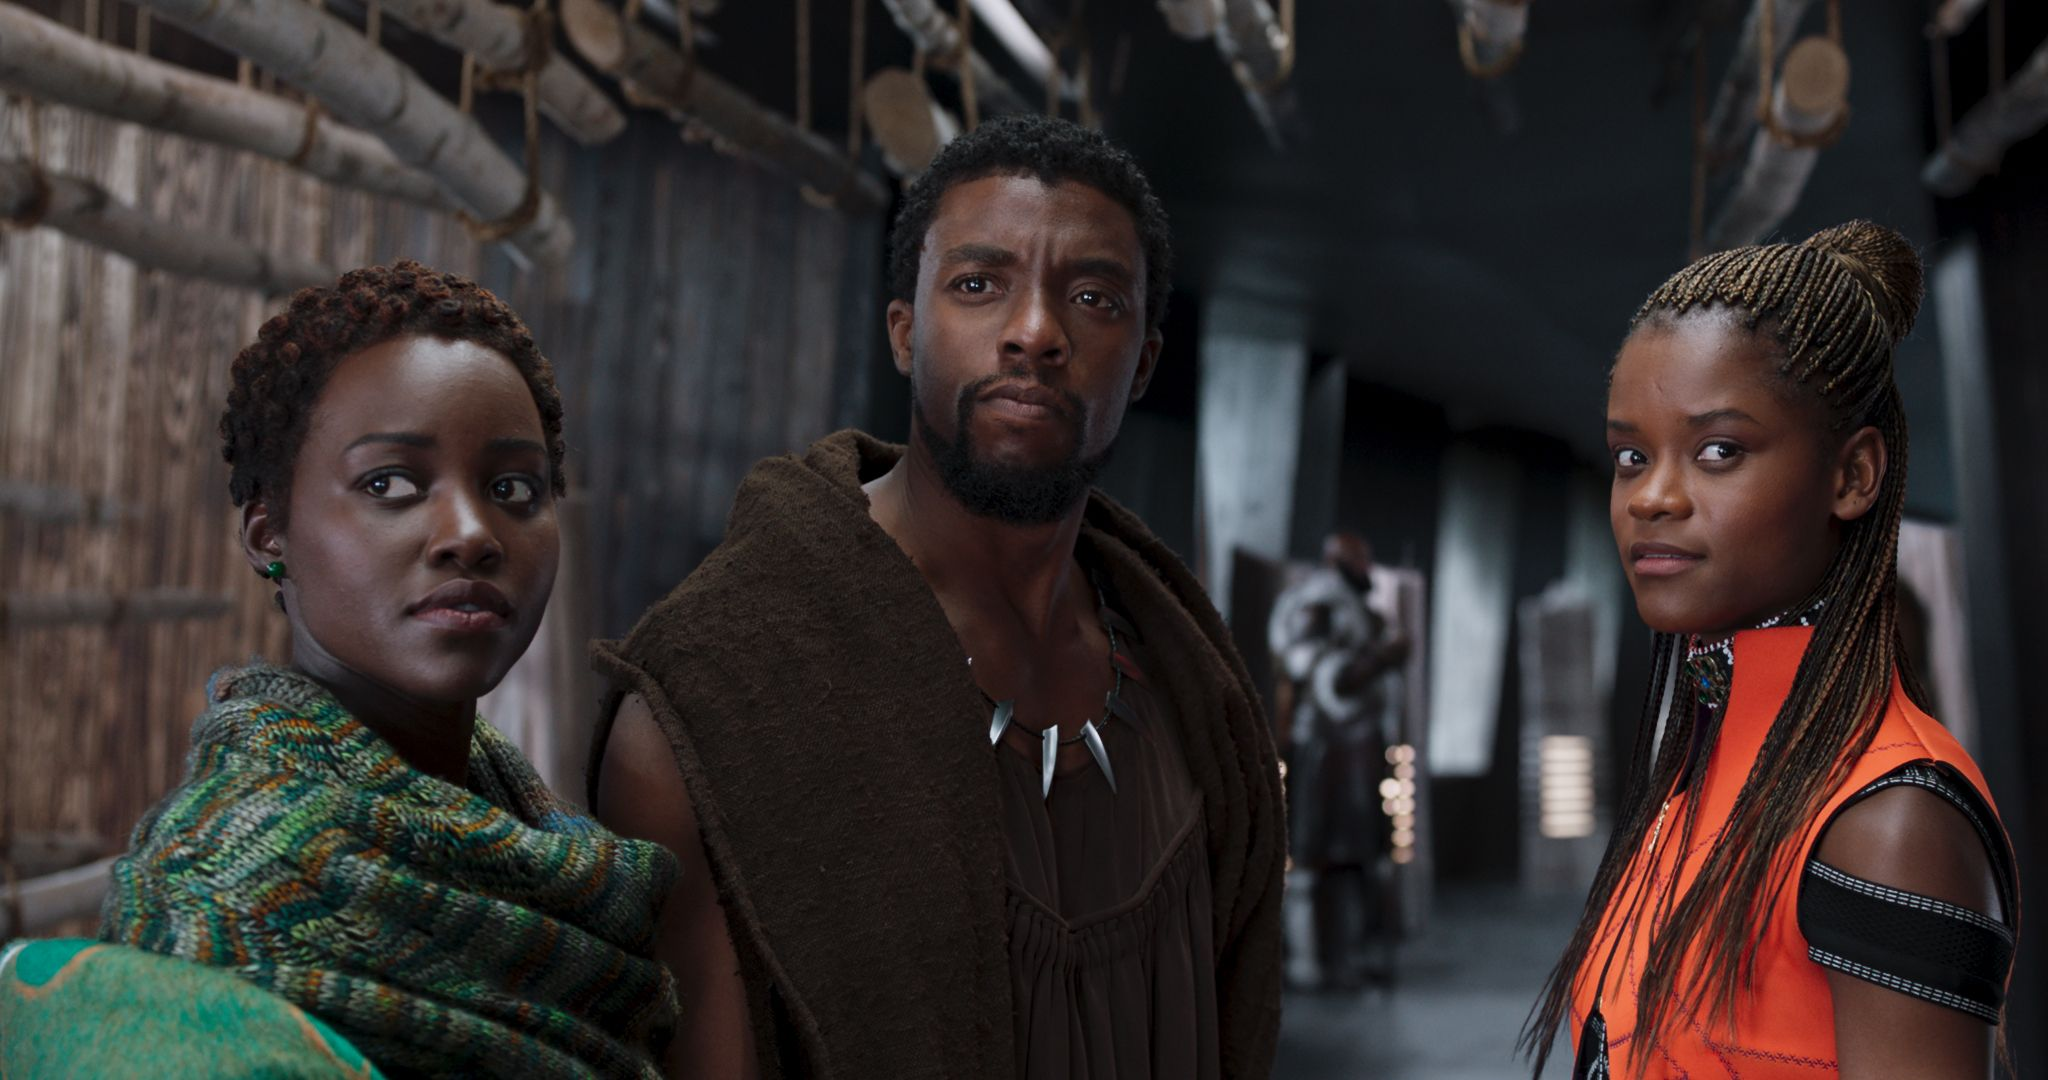 'Black Panther': sign of a new inclusiveness… or one-off?